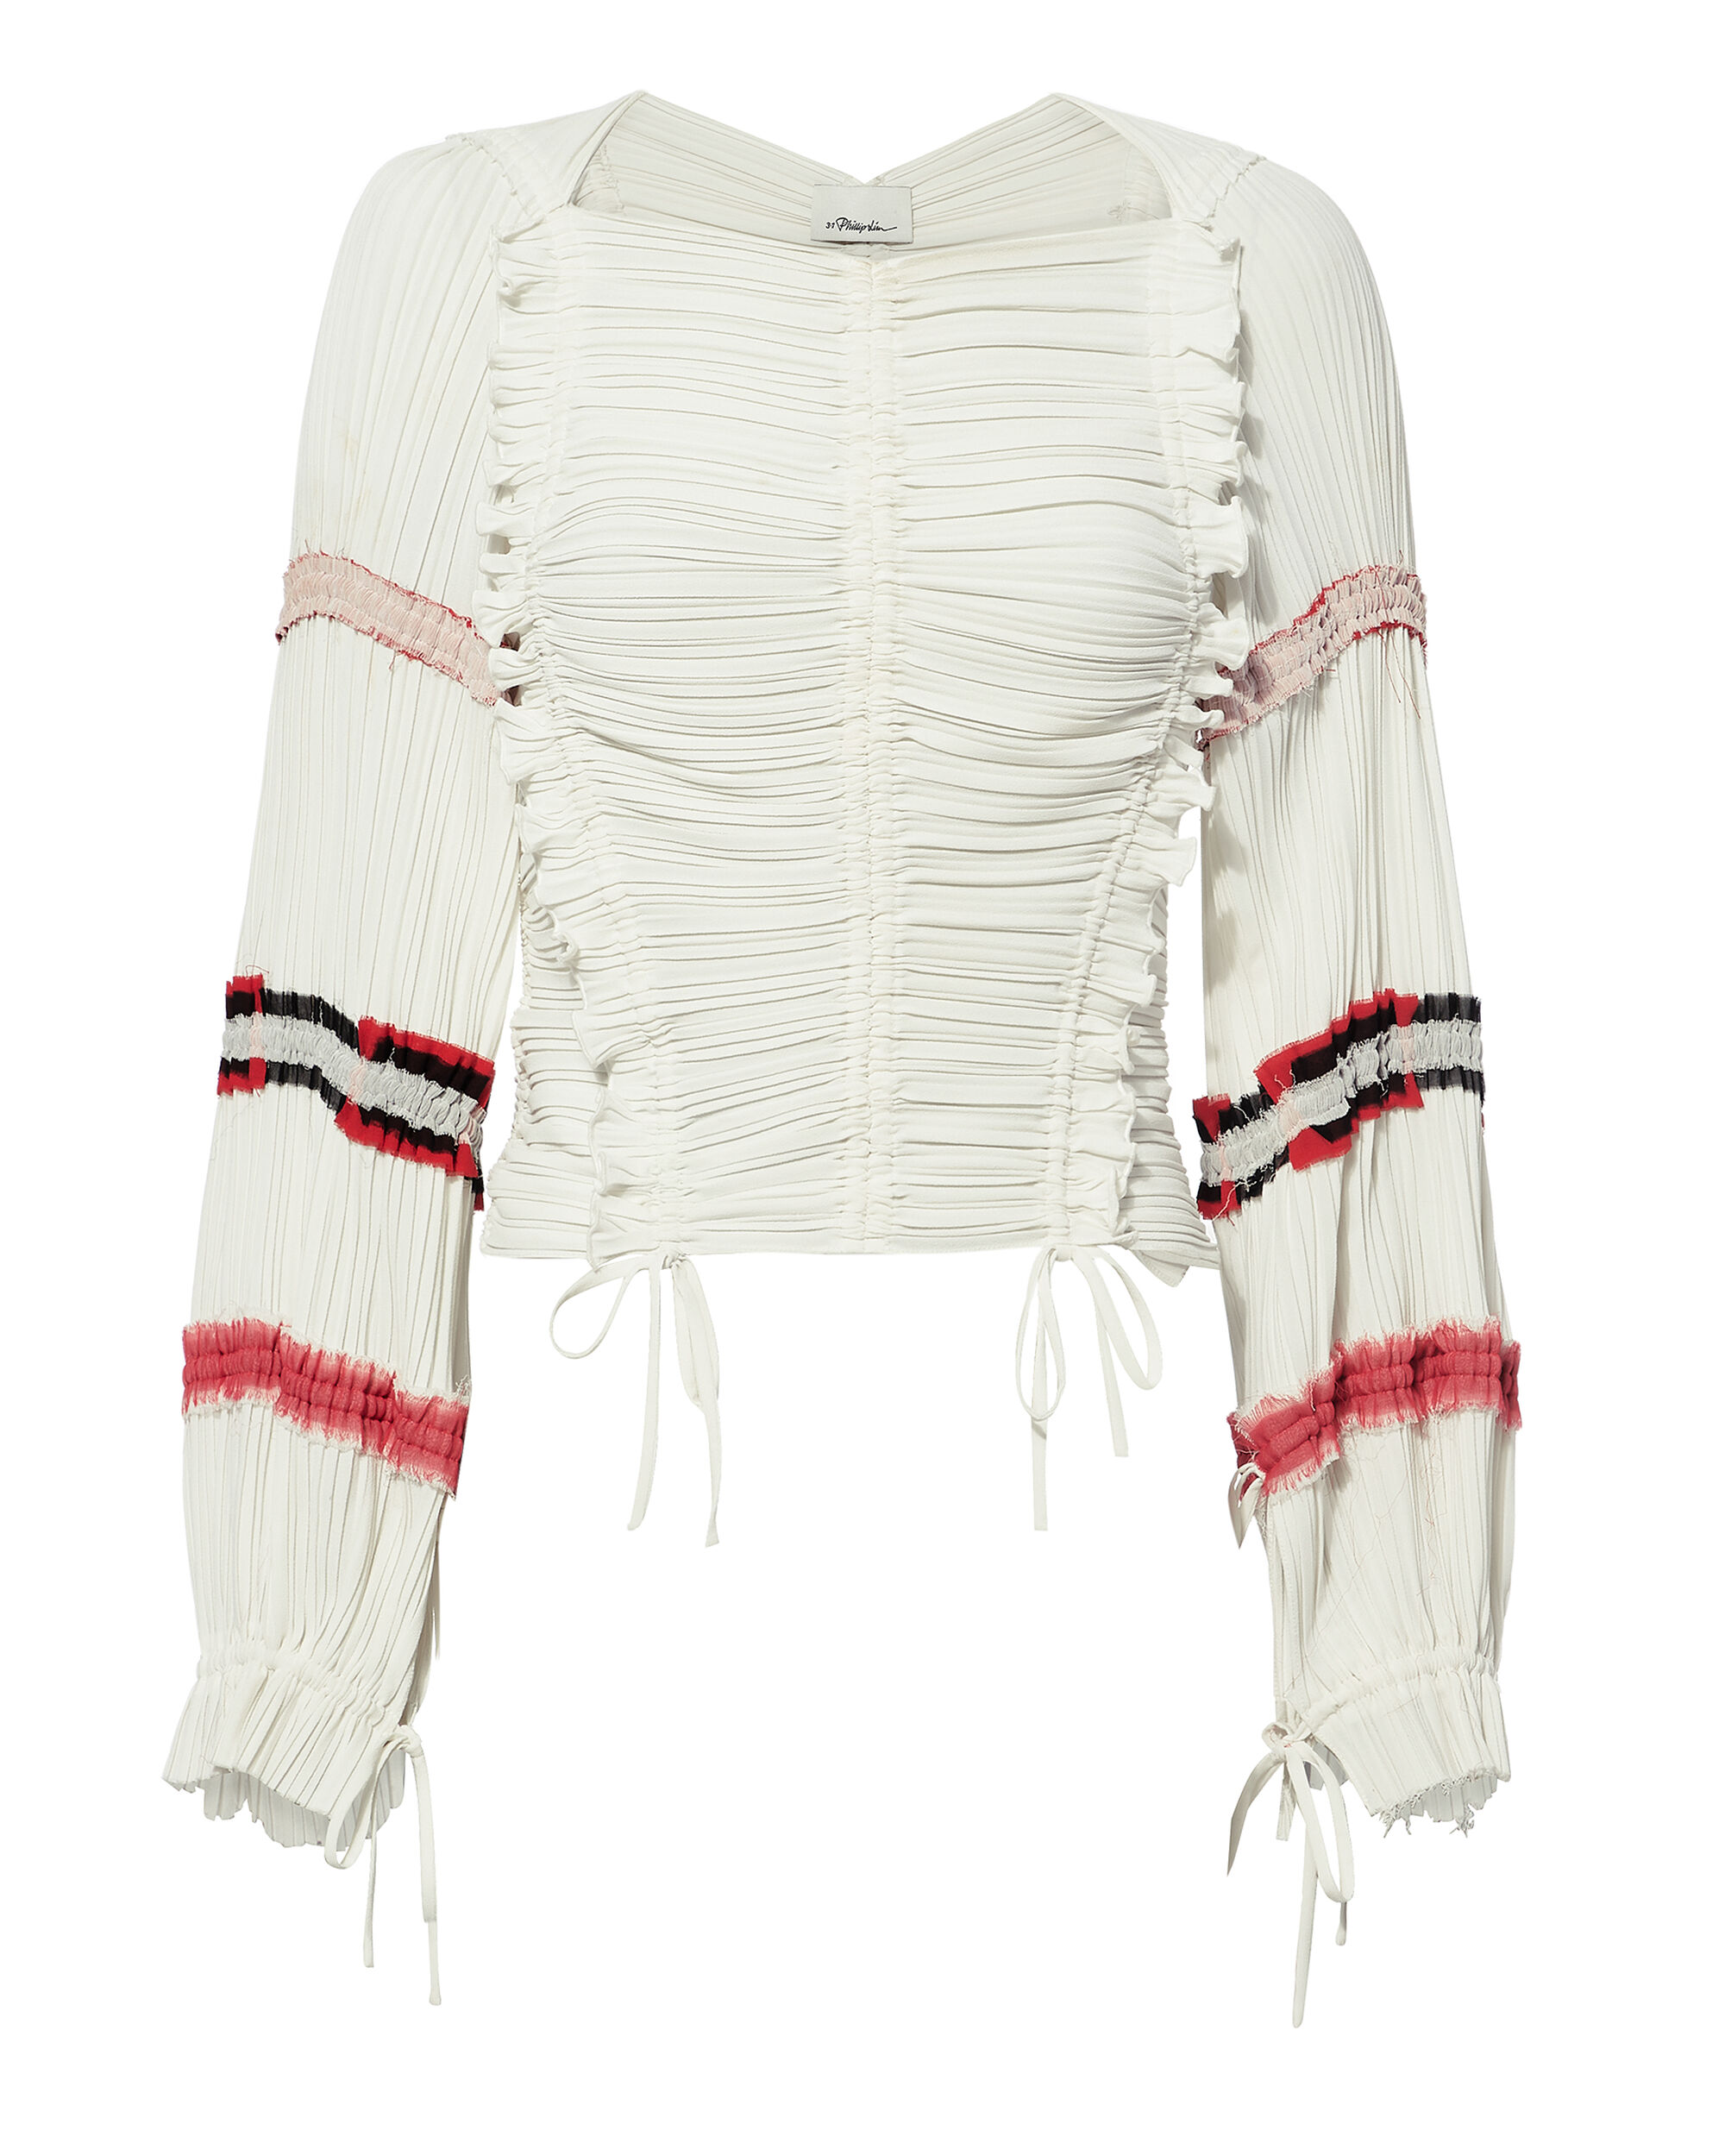 3.1 PHILLIP LIM Gathered Long-Sleeve Ruffle Top in White